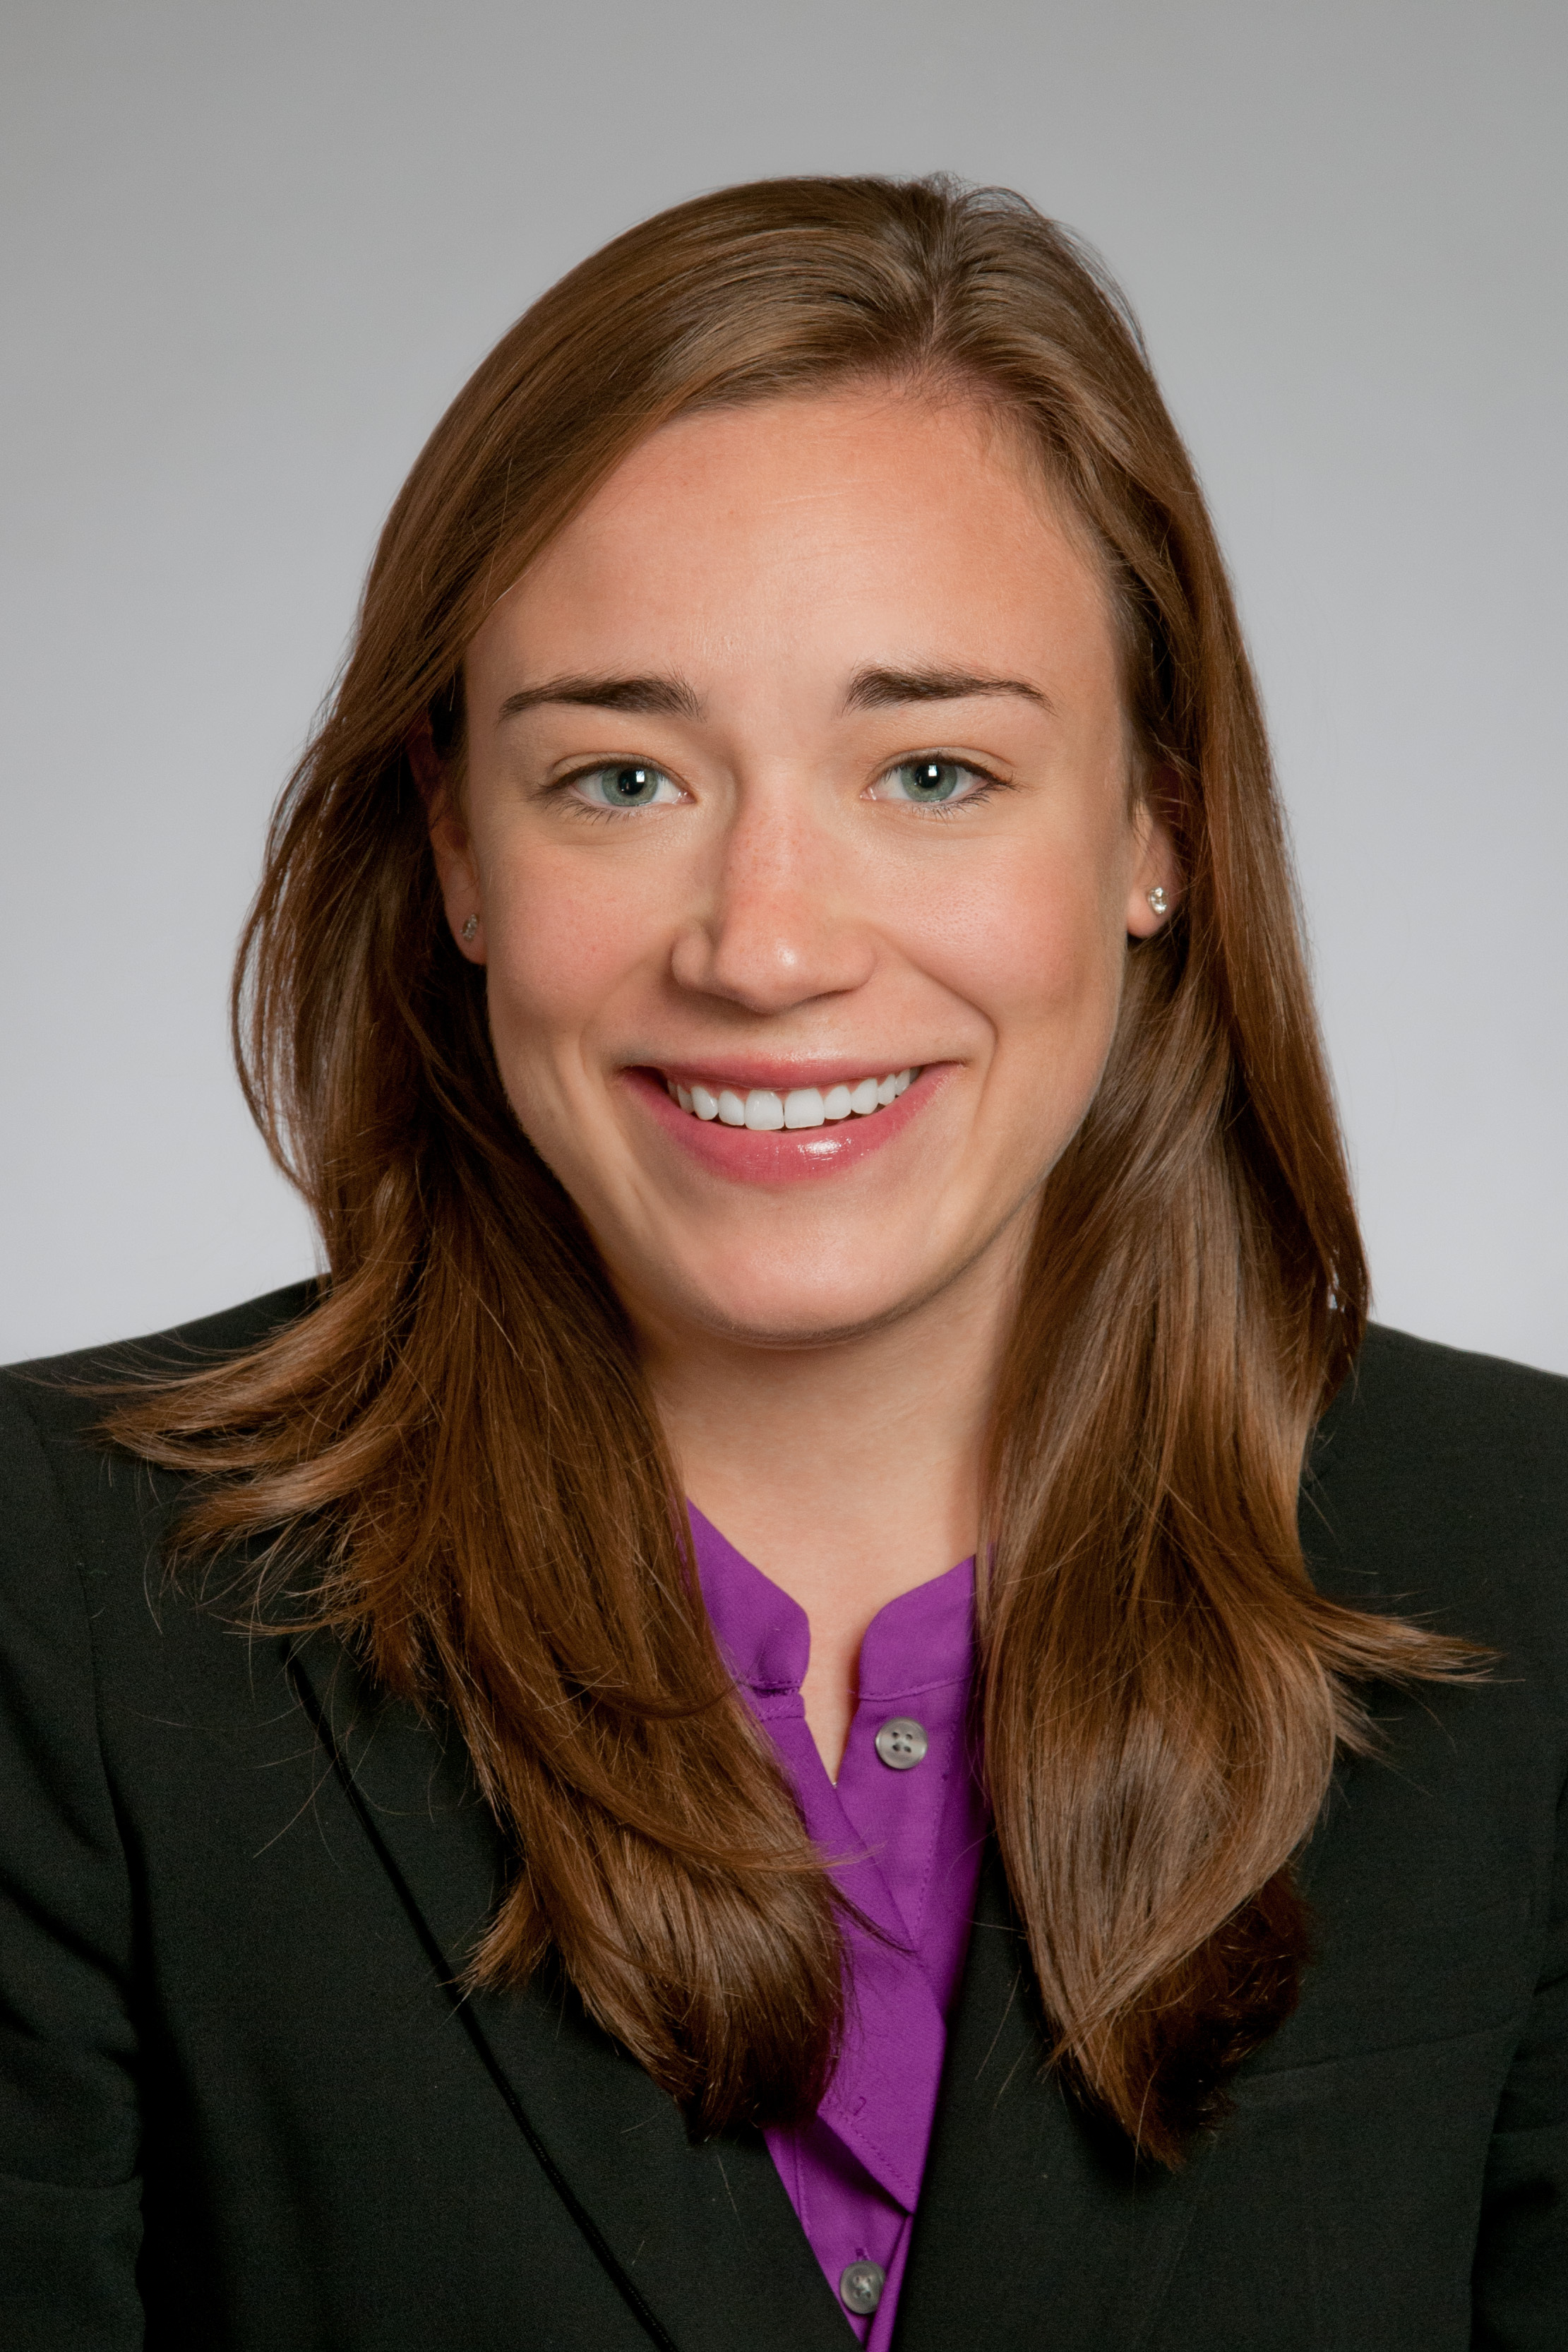 """Putnam Investment's Co-Director of Equity Research, Kathryn (Kate) Lakin was name """"Rising Star of Mutual Funds"""" at the 24th Annual Mutual Fund Awards."""